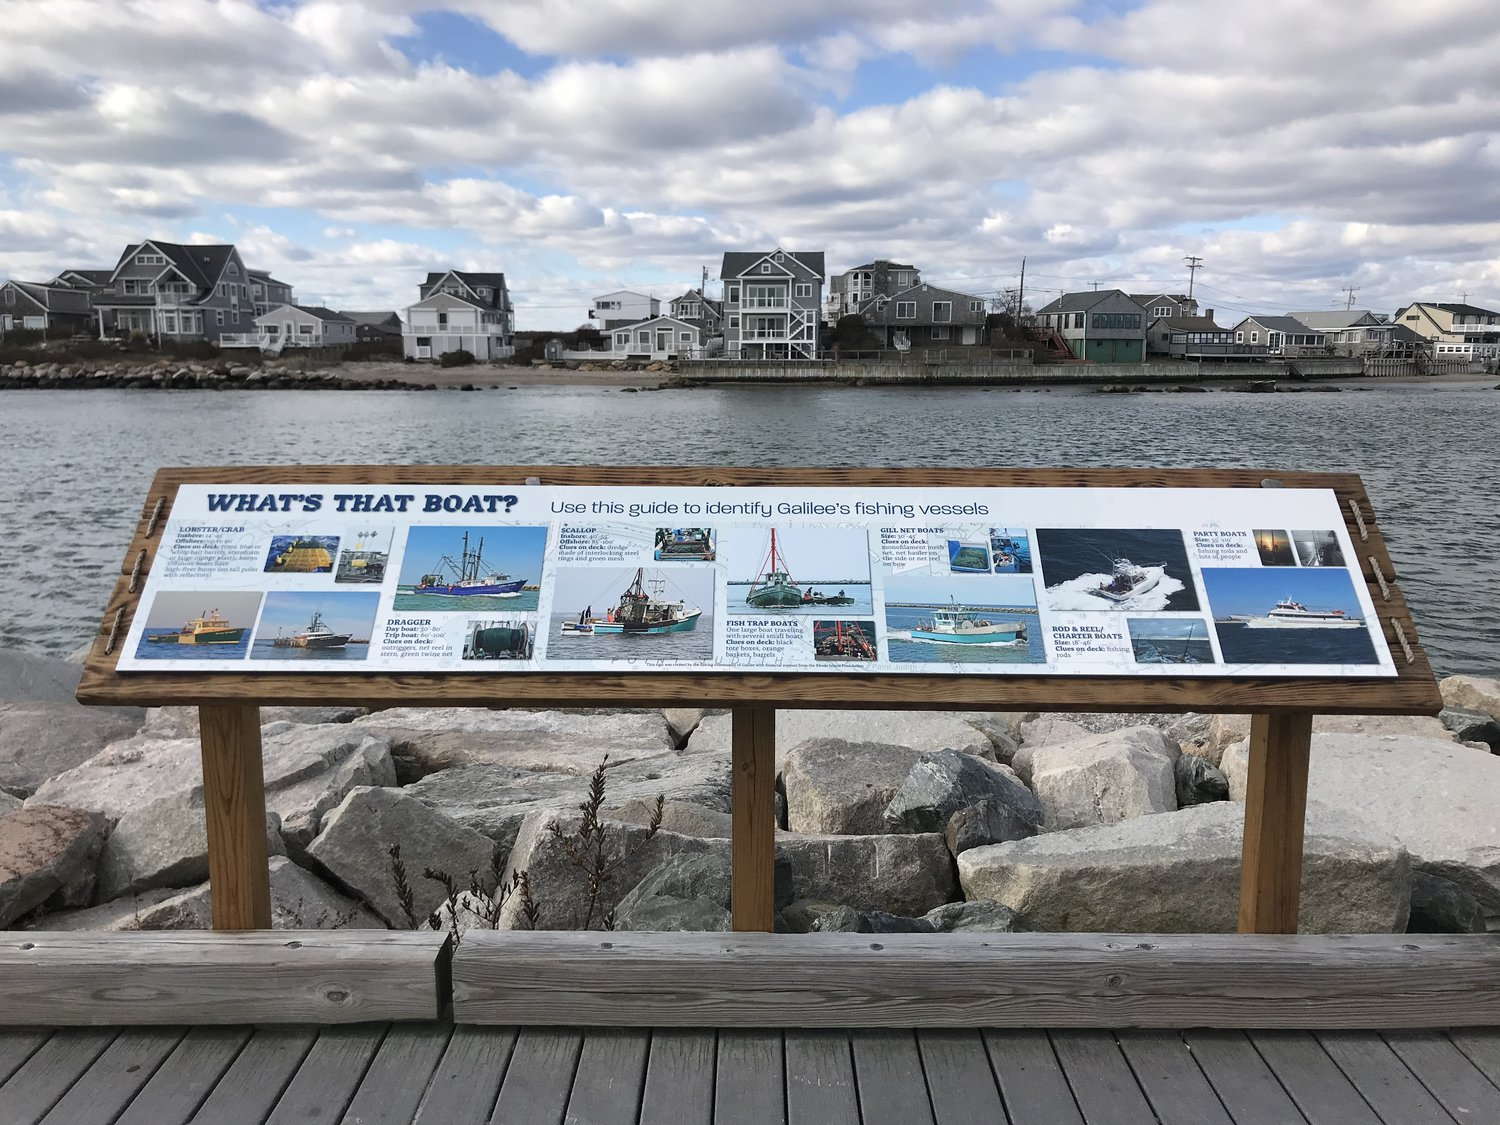 RI Fishing Heritage Trail — Eating with the Ecosystem